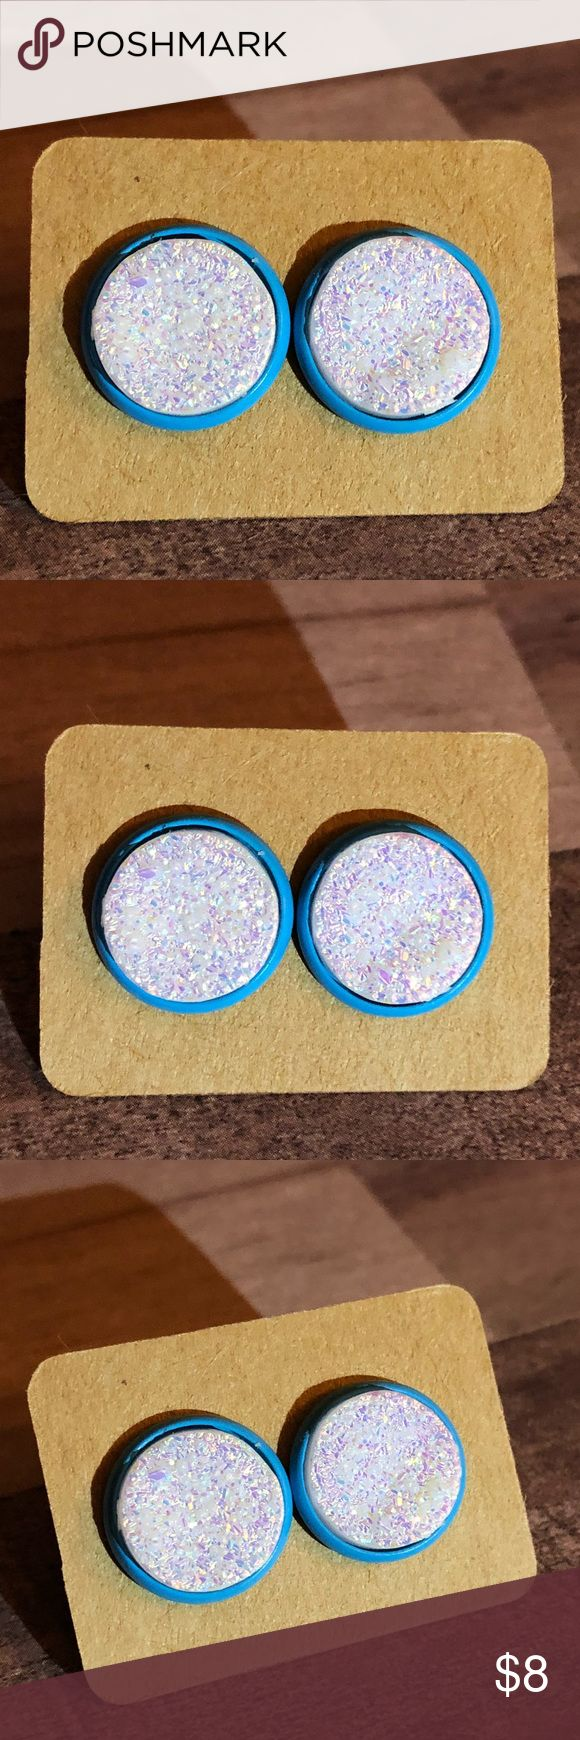 "🆕Sparkling White Ore Druzy Sky Blue Earrings! New, Handmade by Me! 🆕Style! Ore Druzy, Rough, Uneven Surface; 1/2"" Diameter, 12mm; Sparkling White Opal Druzy Stone on Sky Blue Post Back for Pierced Ears! 🎀MANY Colored Back Earrings to Choose from! Can put ANY Stone in ANY Style Back!🎀📸My pic's Of Actual Items you will receive!  ▶️Part of 3 for $15 Deal! Bundle & Save! • Druzy Stud Earrings for pierced ears • Nickel, Lead & Cadmium Free  *NO TRADES *Price is FIRM as Listed!  *Sales are…"